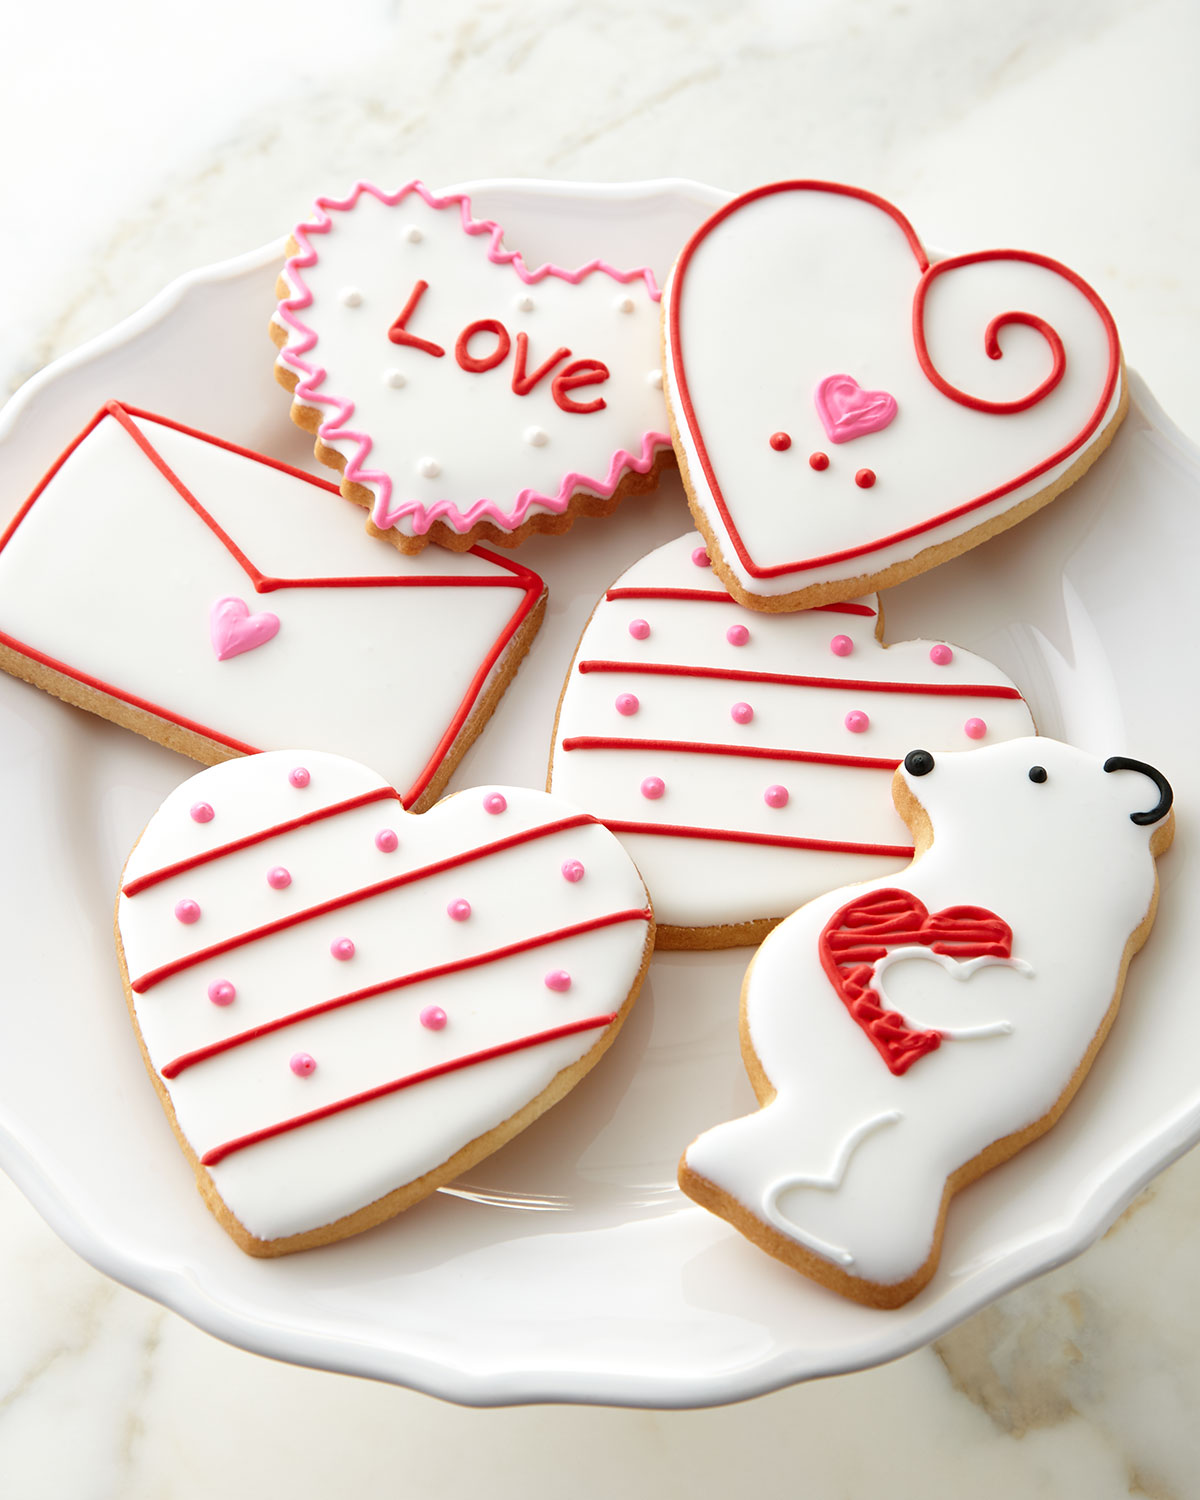 Hand-Decorated Valentine's Day Cookies - Neiman Marcus